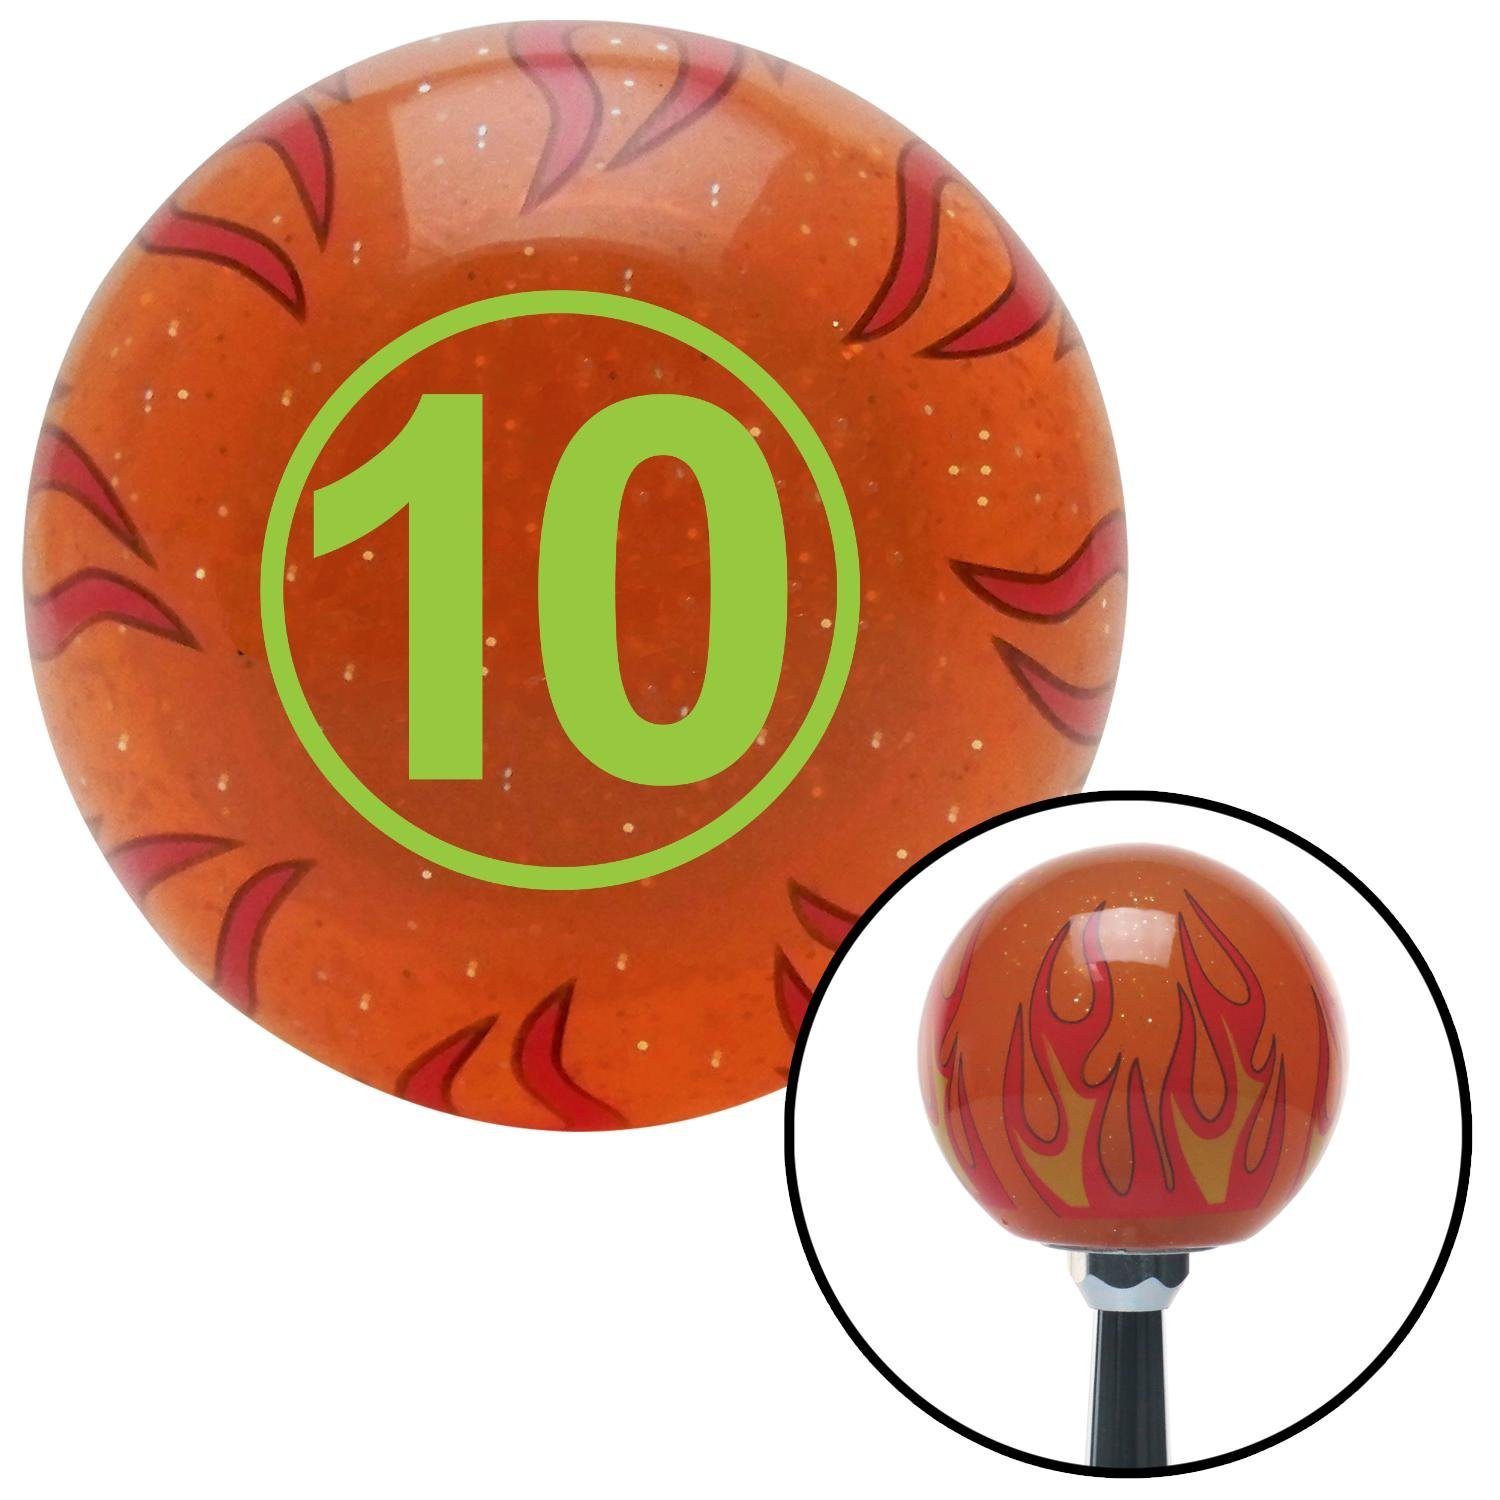 American Shifter 252837 Orange Flame Metal Flake Shift Knob with M16 x 1.5 Insert Green Ball #10